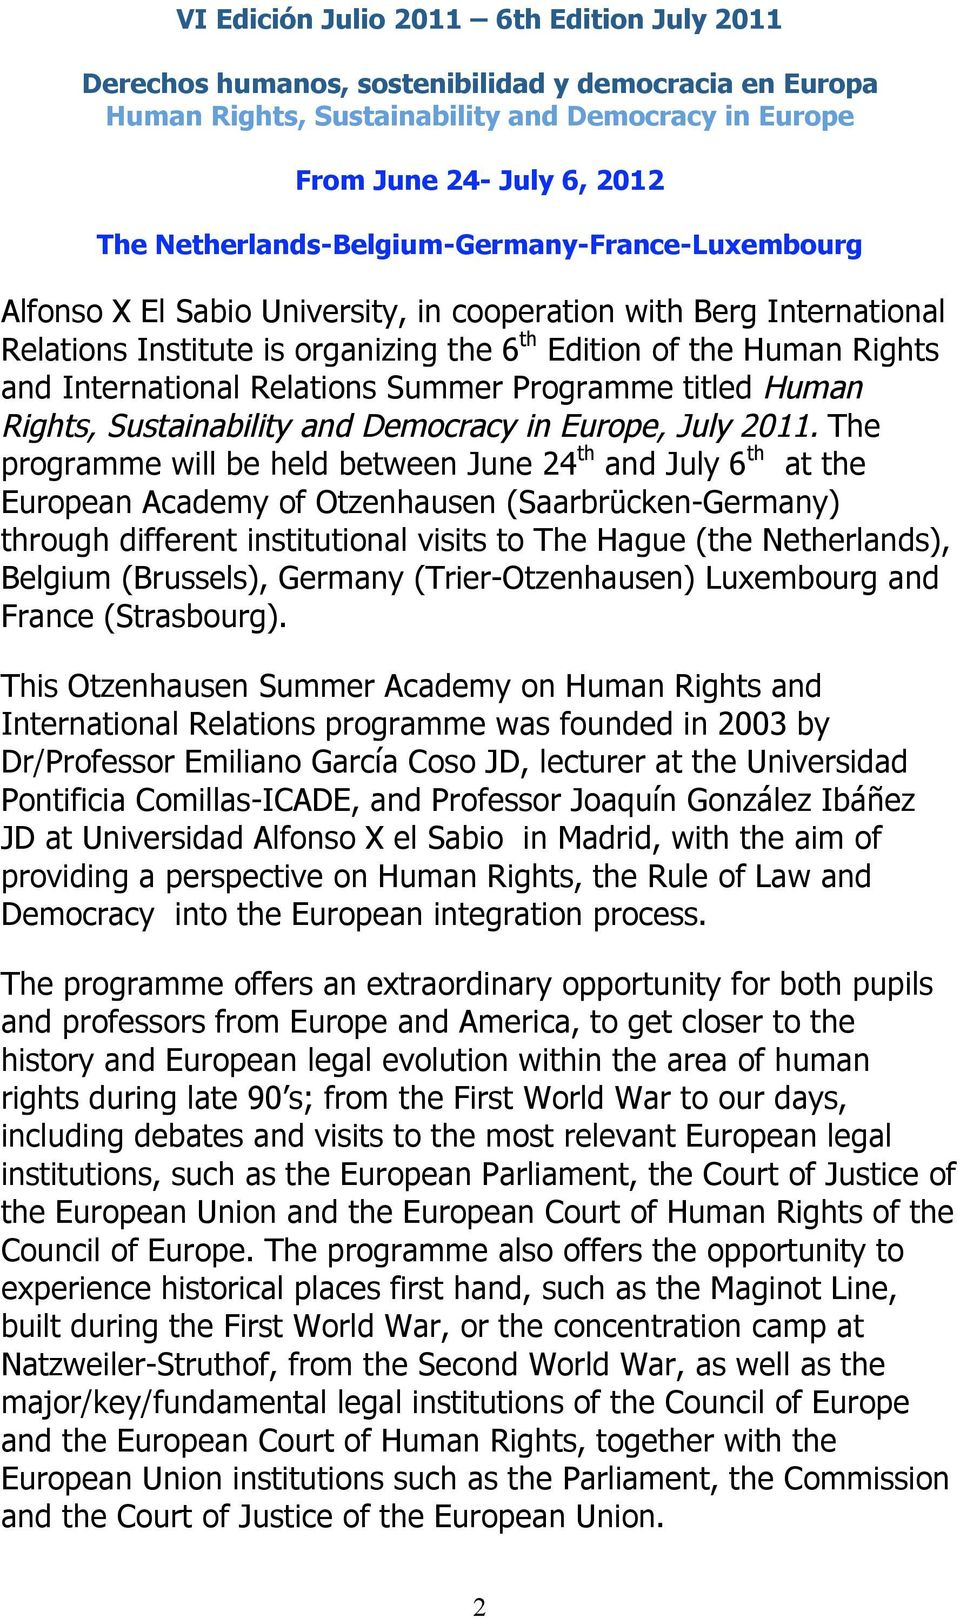 International Relations Summer Programme titled Human Rights, Sustainability and Democracy in Europe, July 2011.